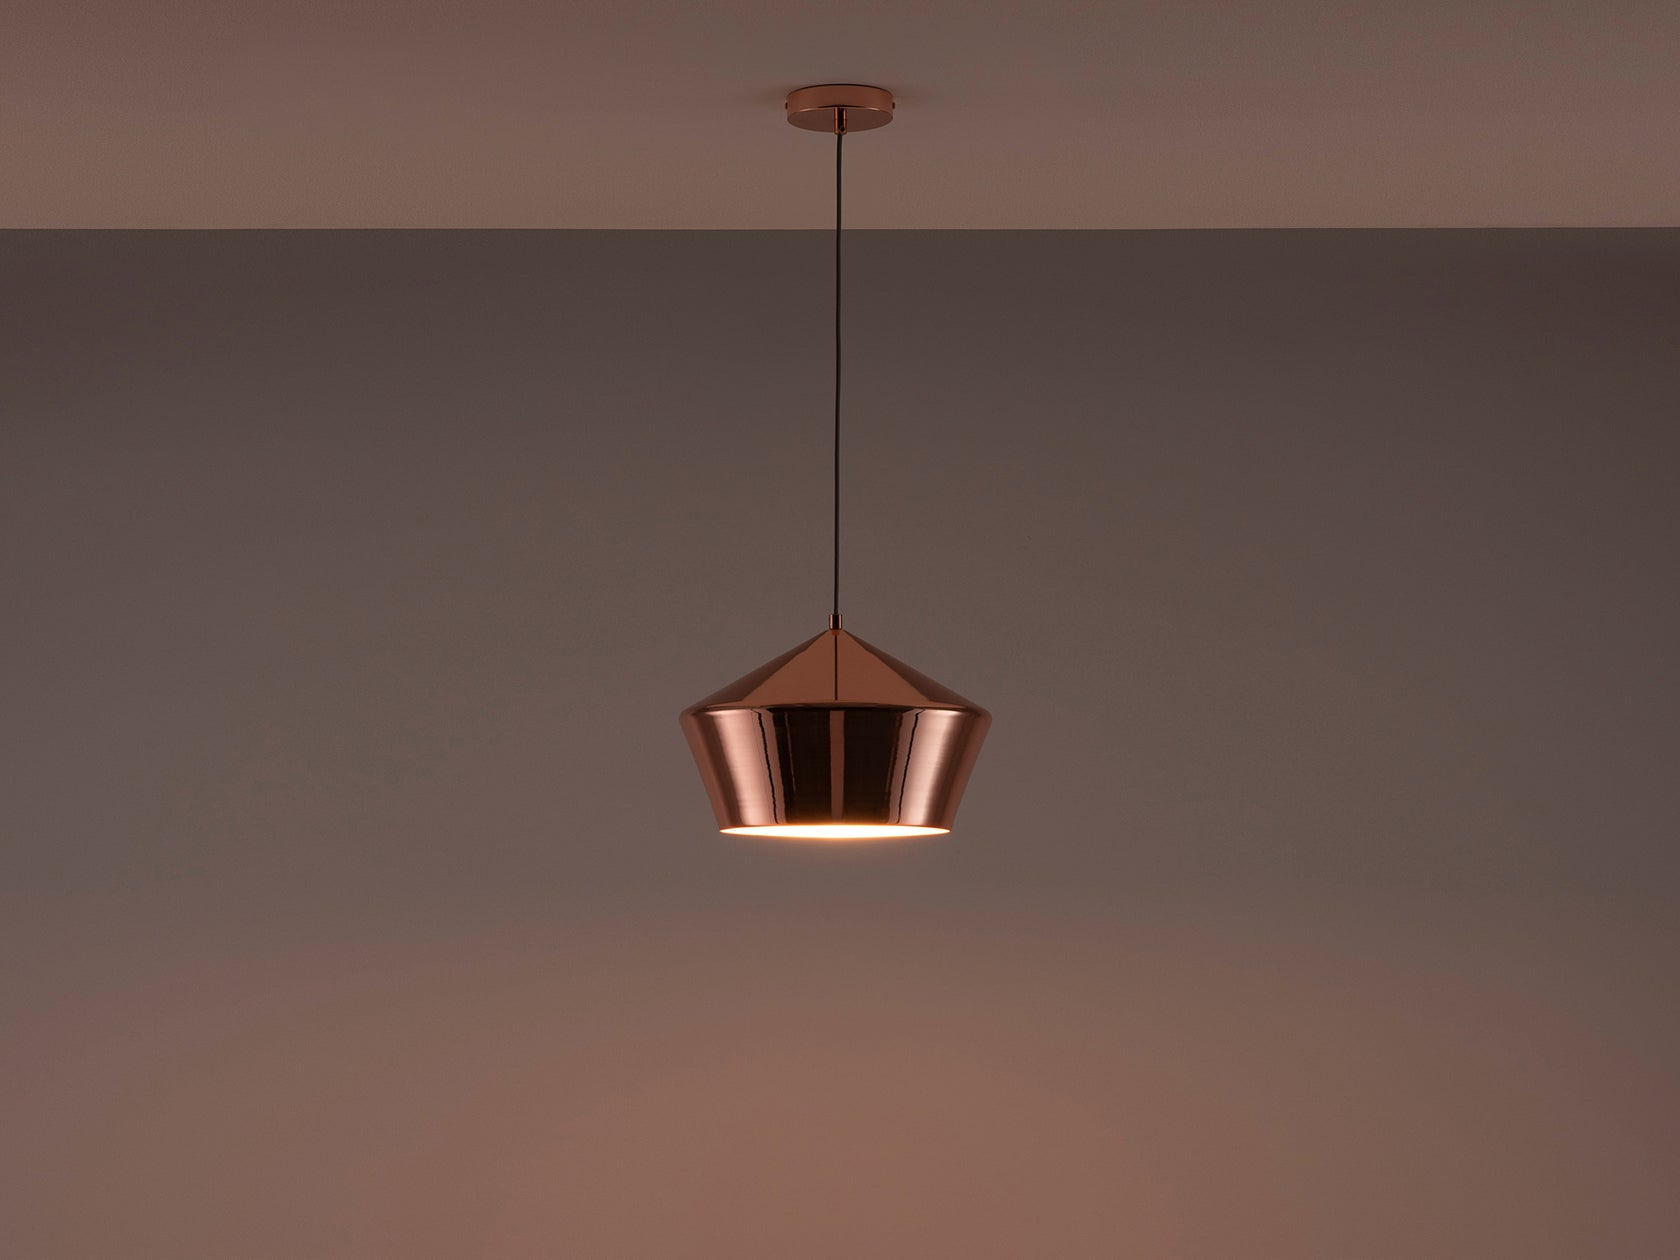 Metal diner pendant copper | dark | houseof.com